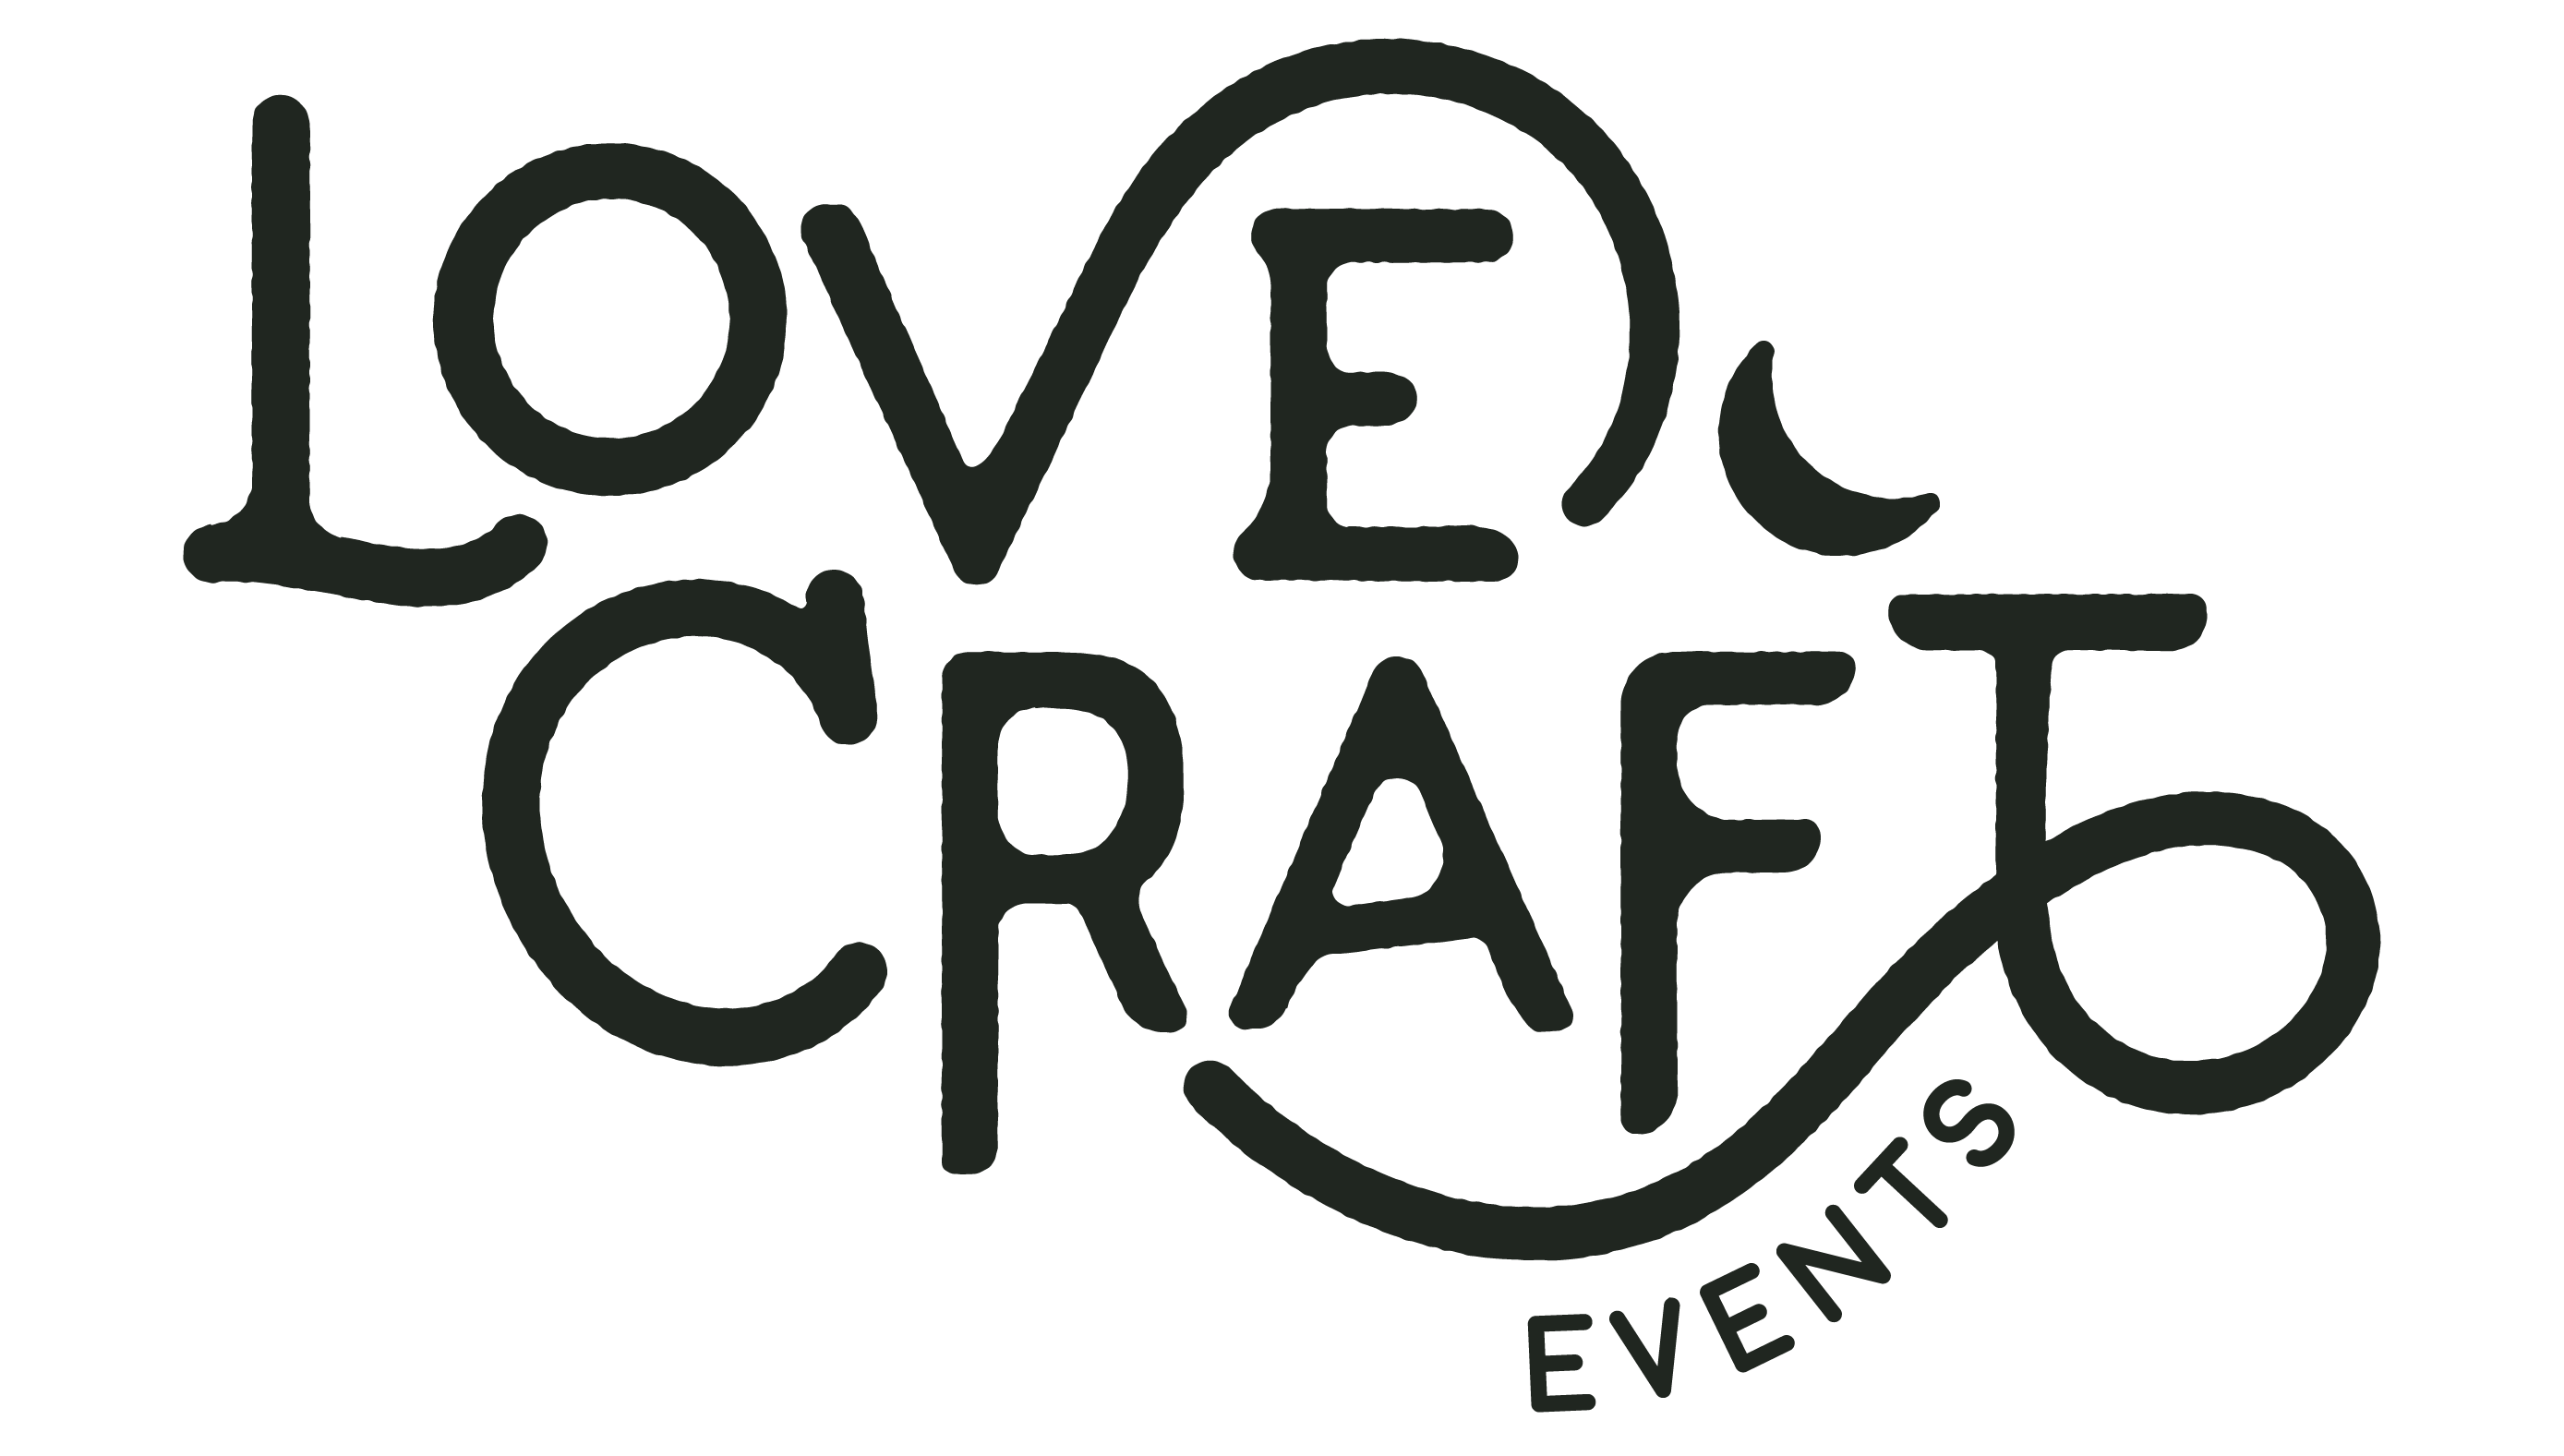 Lovecraft Events